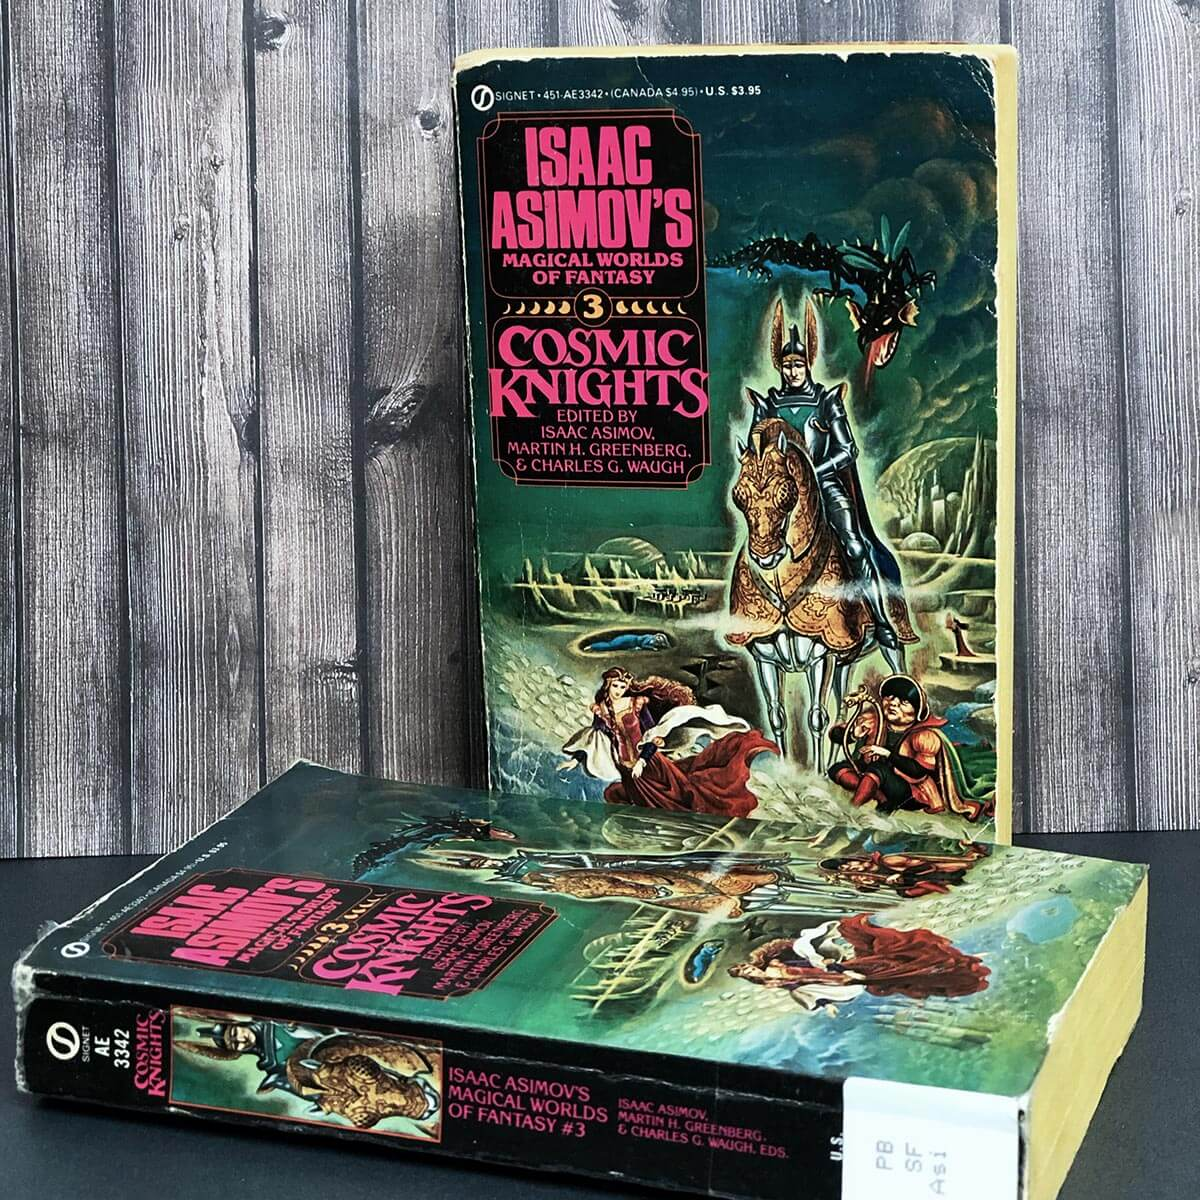 Cosmic Knights - book cover